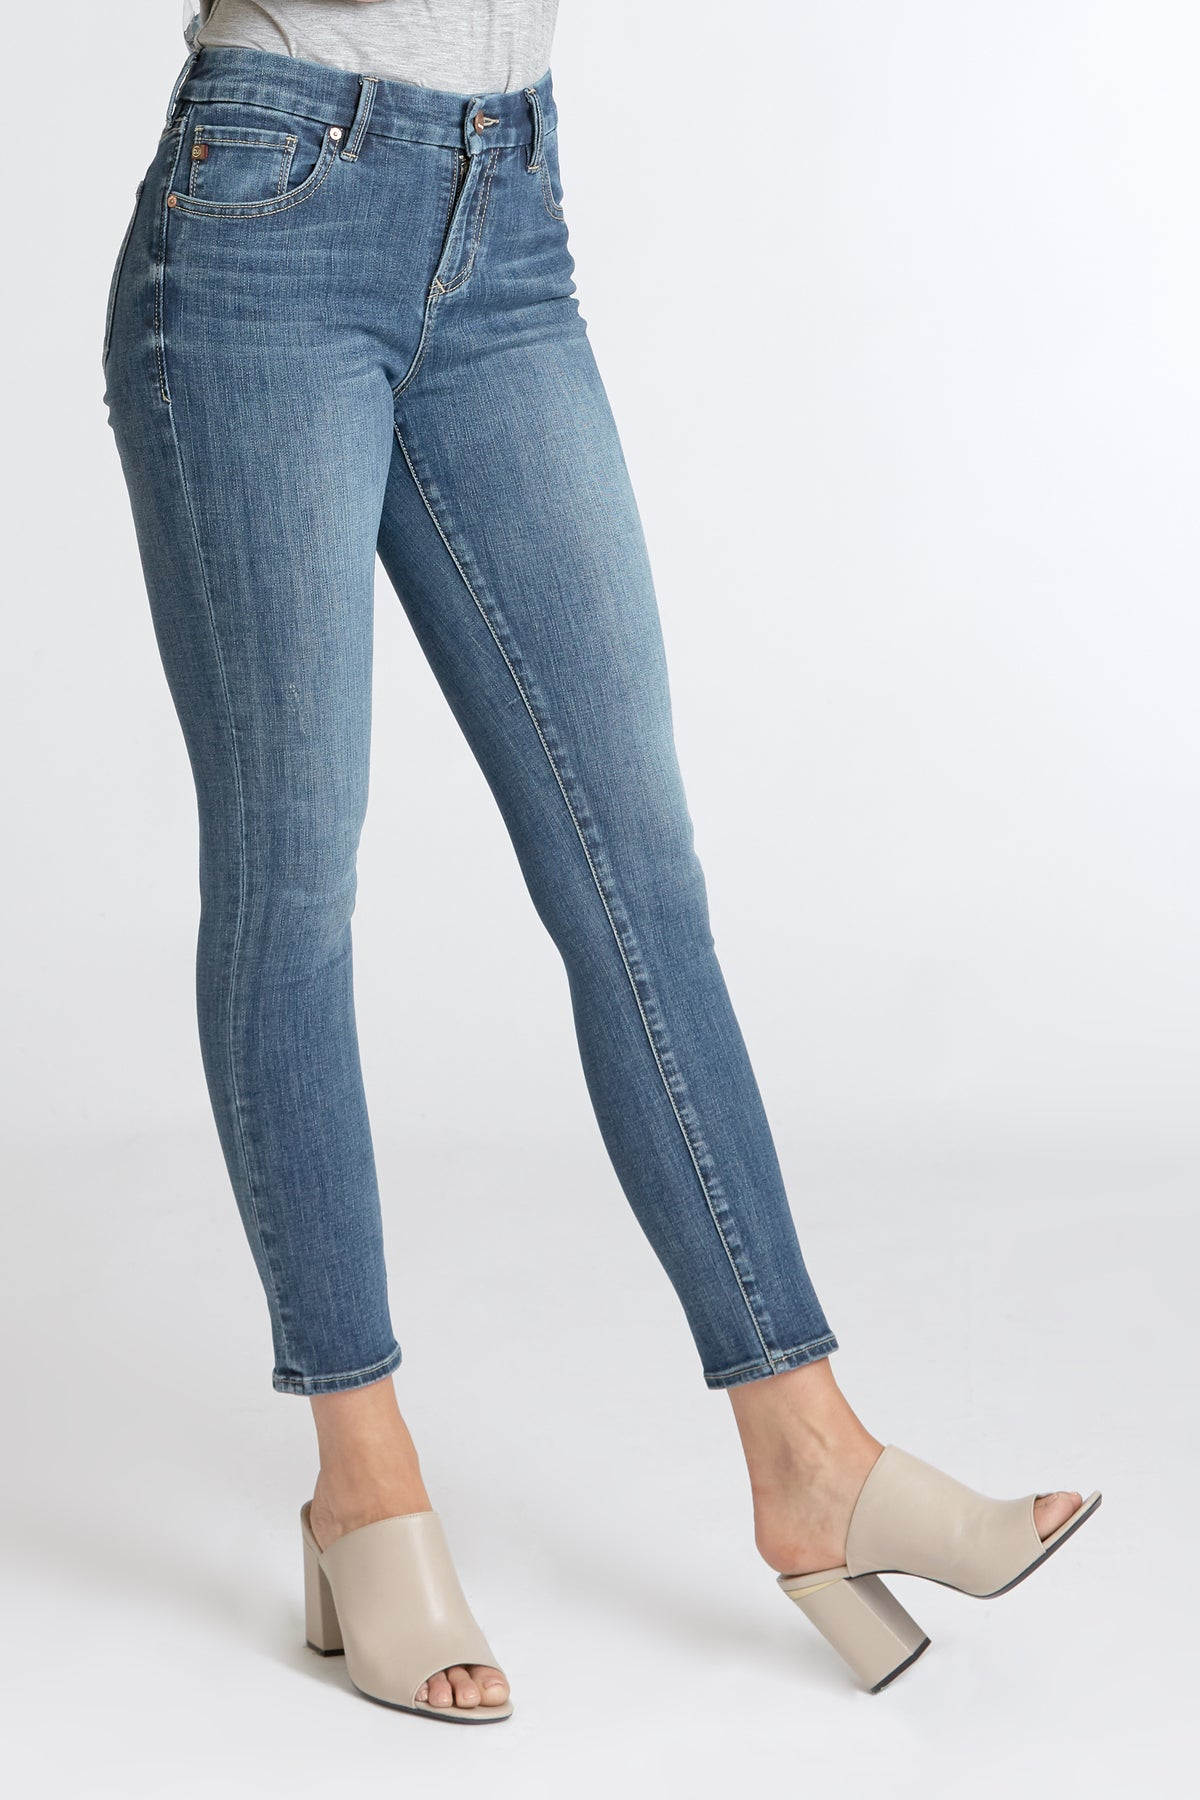 Dear John Denim: Gisele Skinny Jeans, Brooklyn